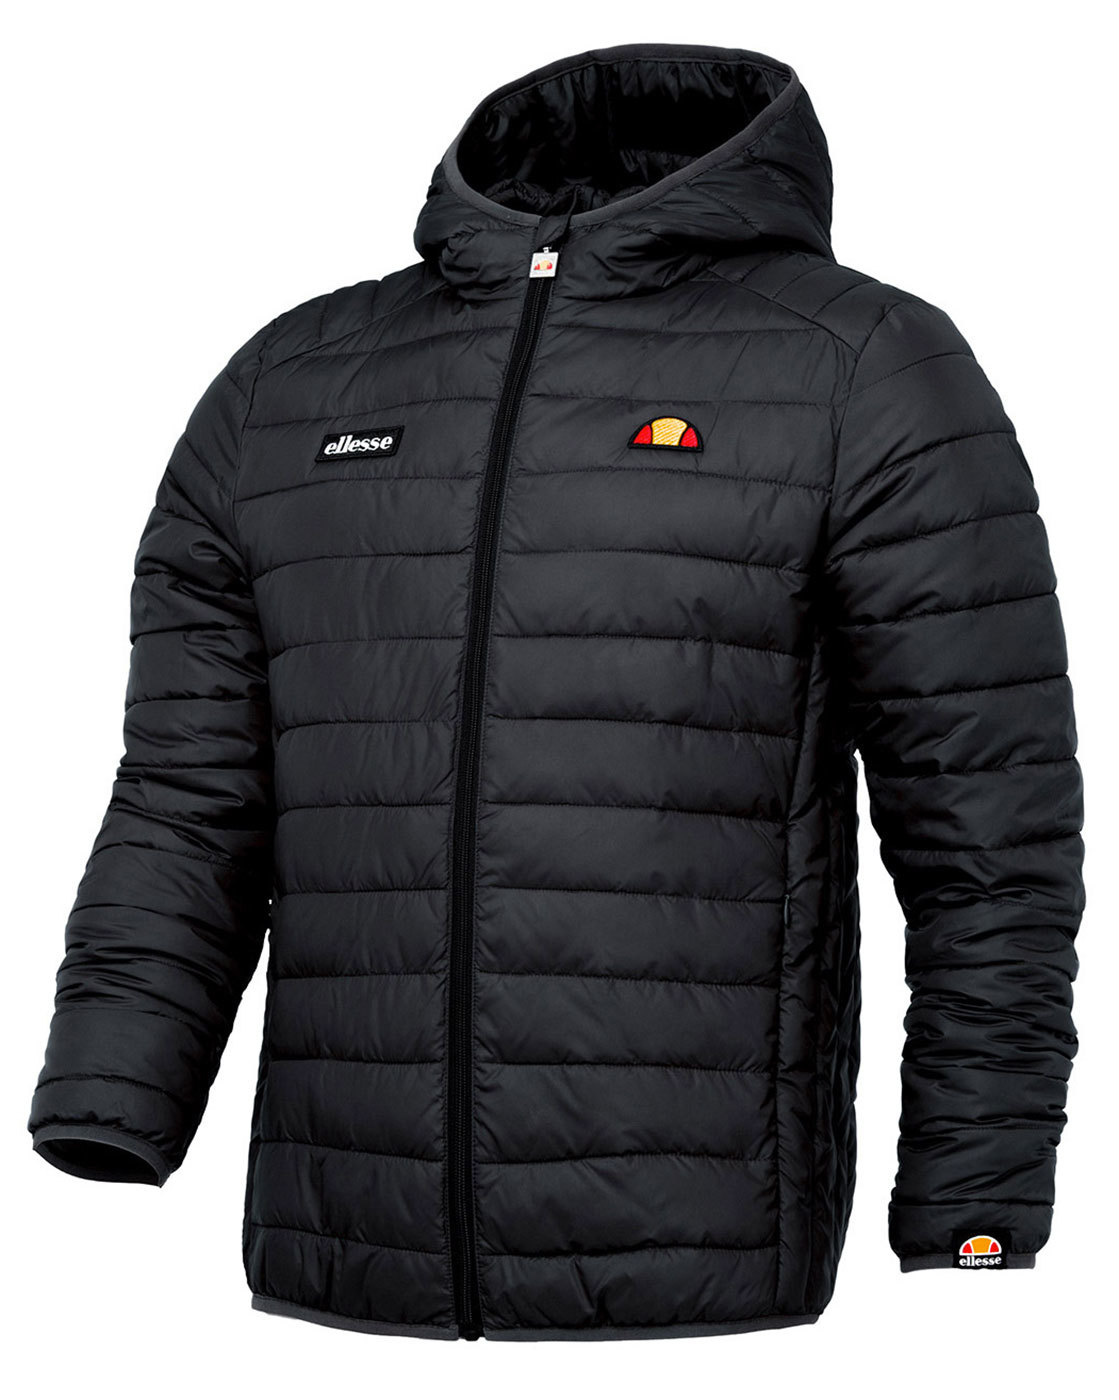 Lombardy ELLESSE Retro 70s Mens Quilted Ski Jacket